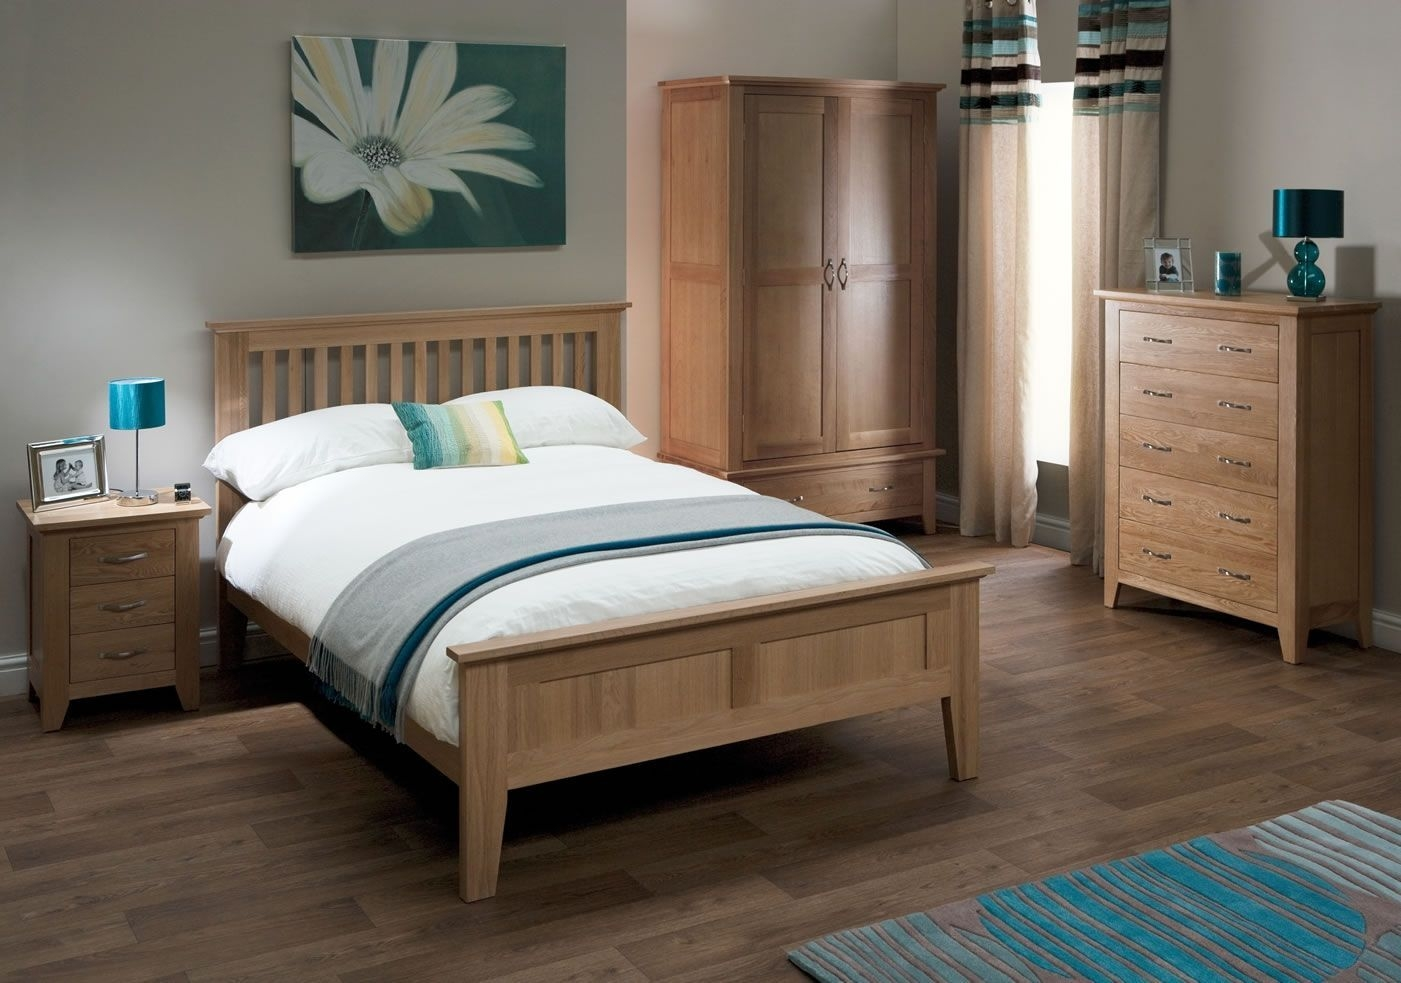 Bedroom Designs With Oak Furniture oakfurniture  Oak